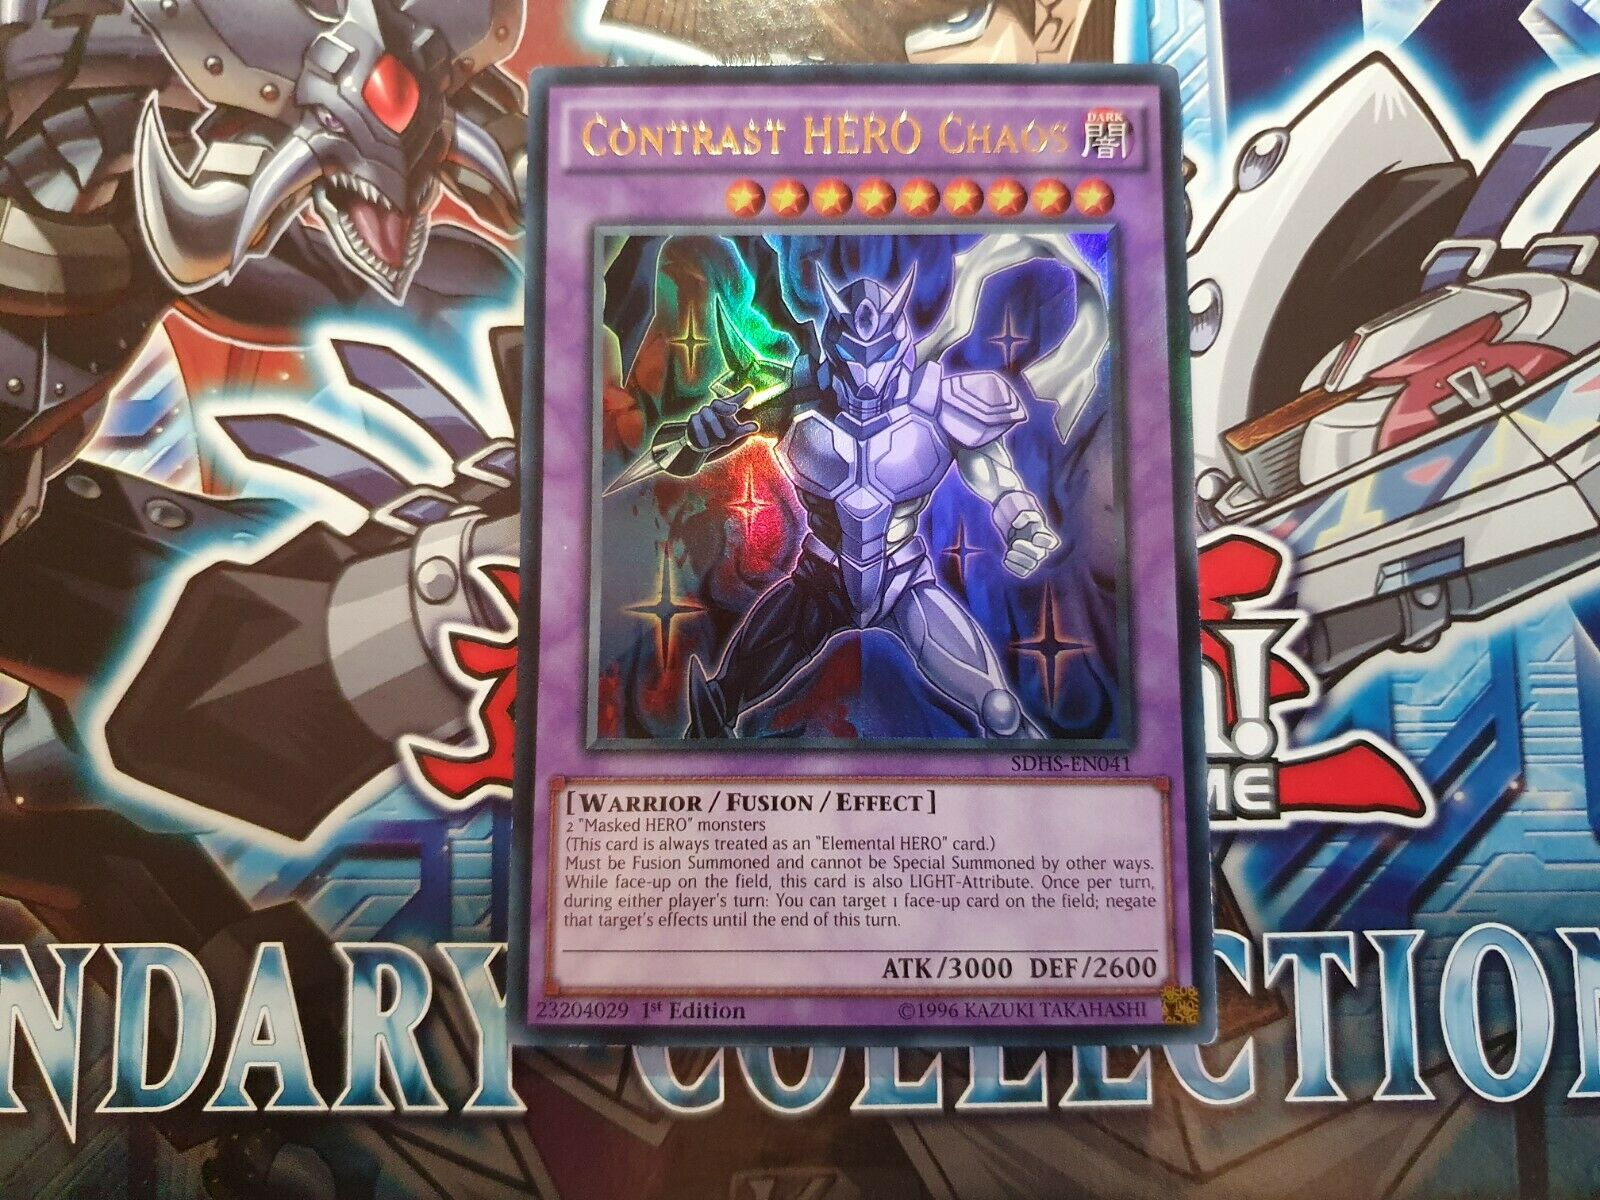 Near Mint Ultra Rare SDHS-EN041 Contrast HERO Chaos Unlimited Edition x3